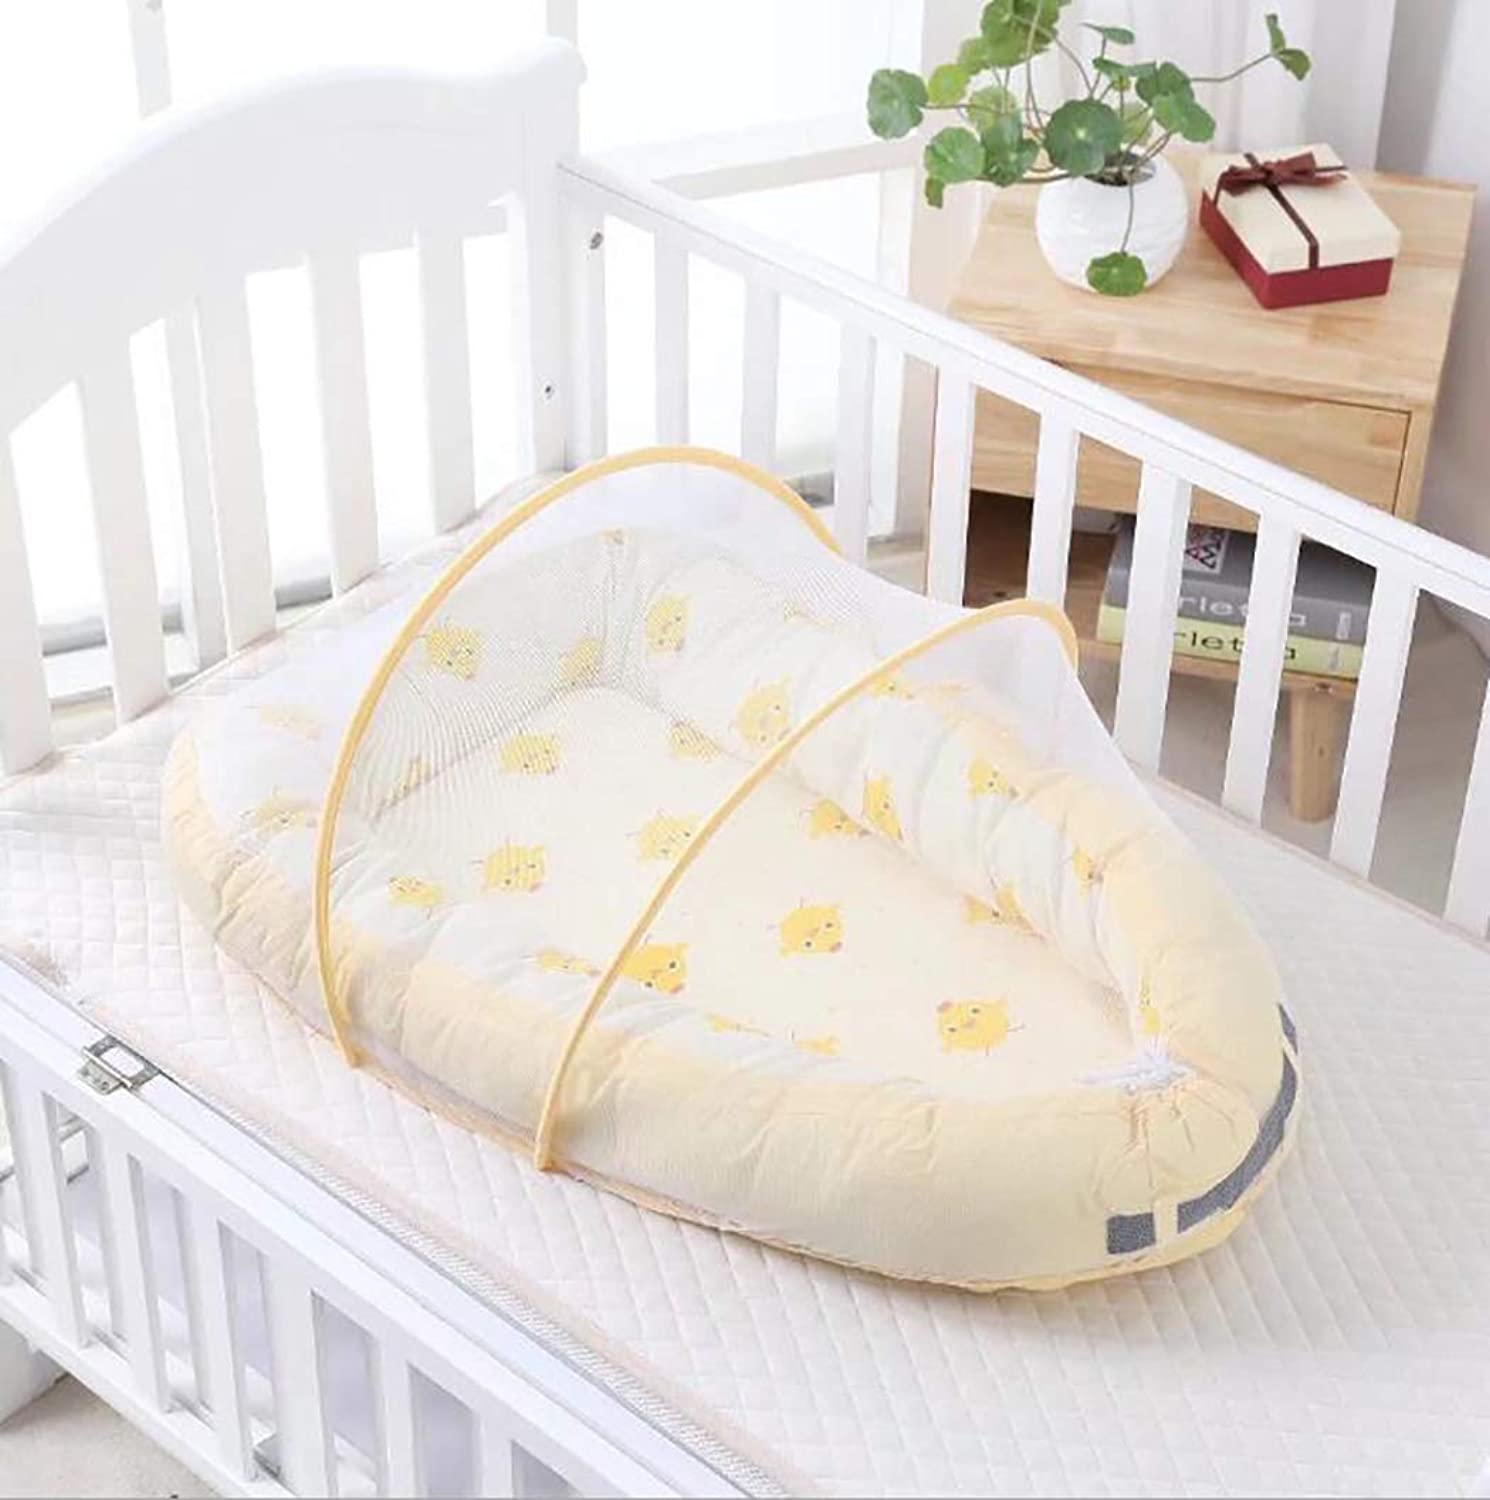 Baby Travel Bed,Baby Bed Portable Folding Baby Crib Mosquito Net Portable Baby Cots Newborn Foldable Crib,Beige